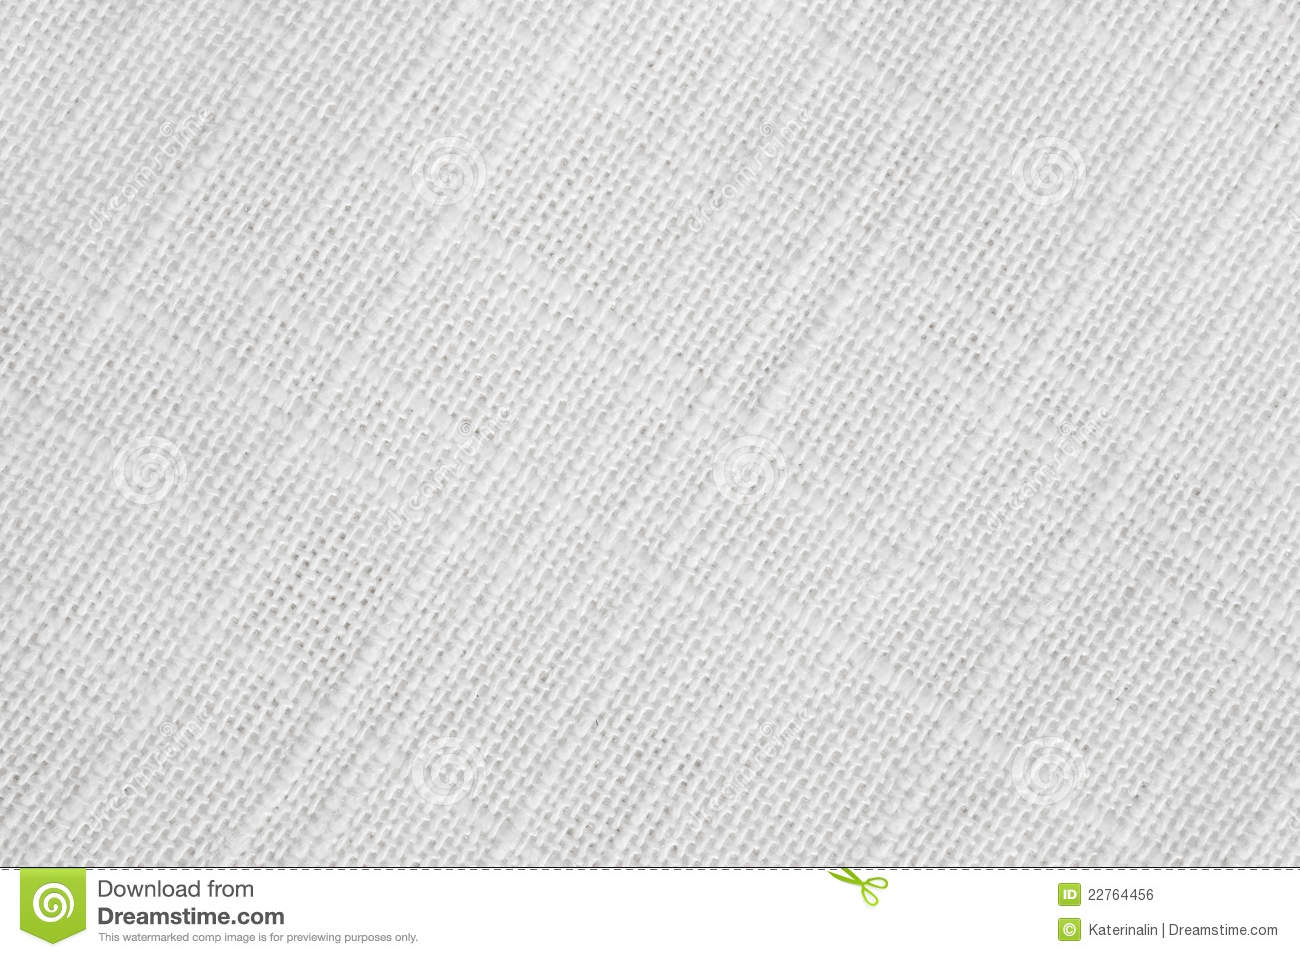 Linen Background Texture Free Stock Photos Download 9 467: High Resolution Linen Canvas Texture Background Stock